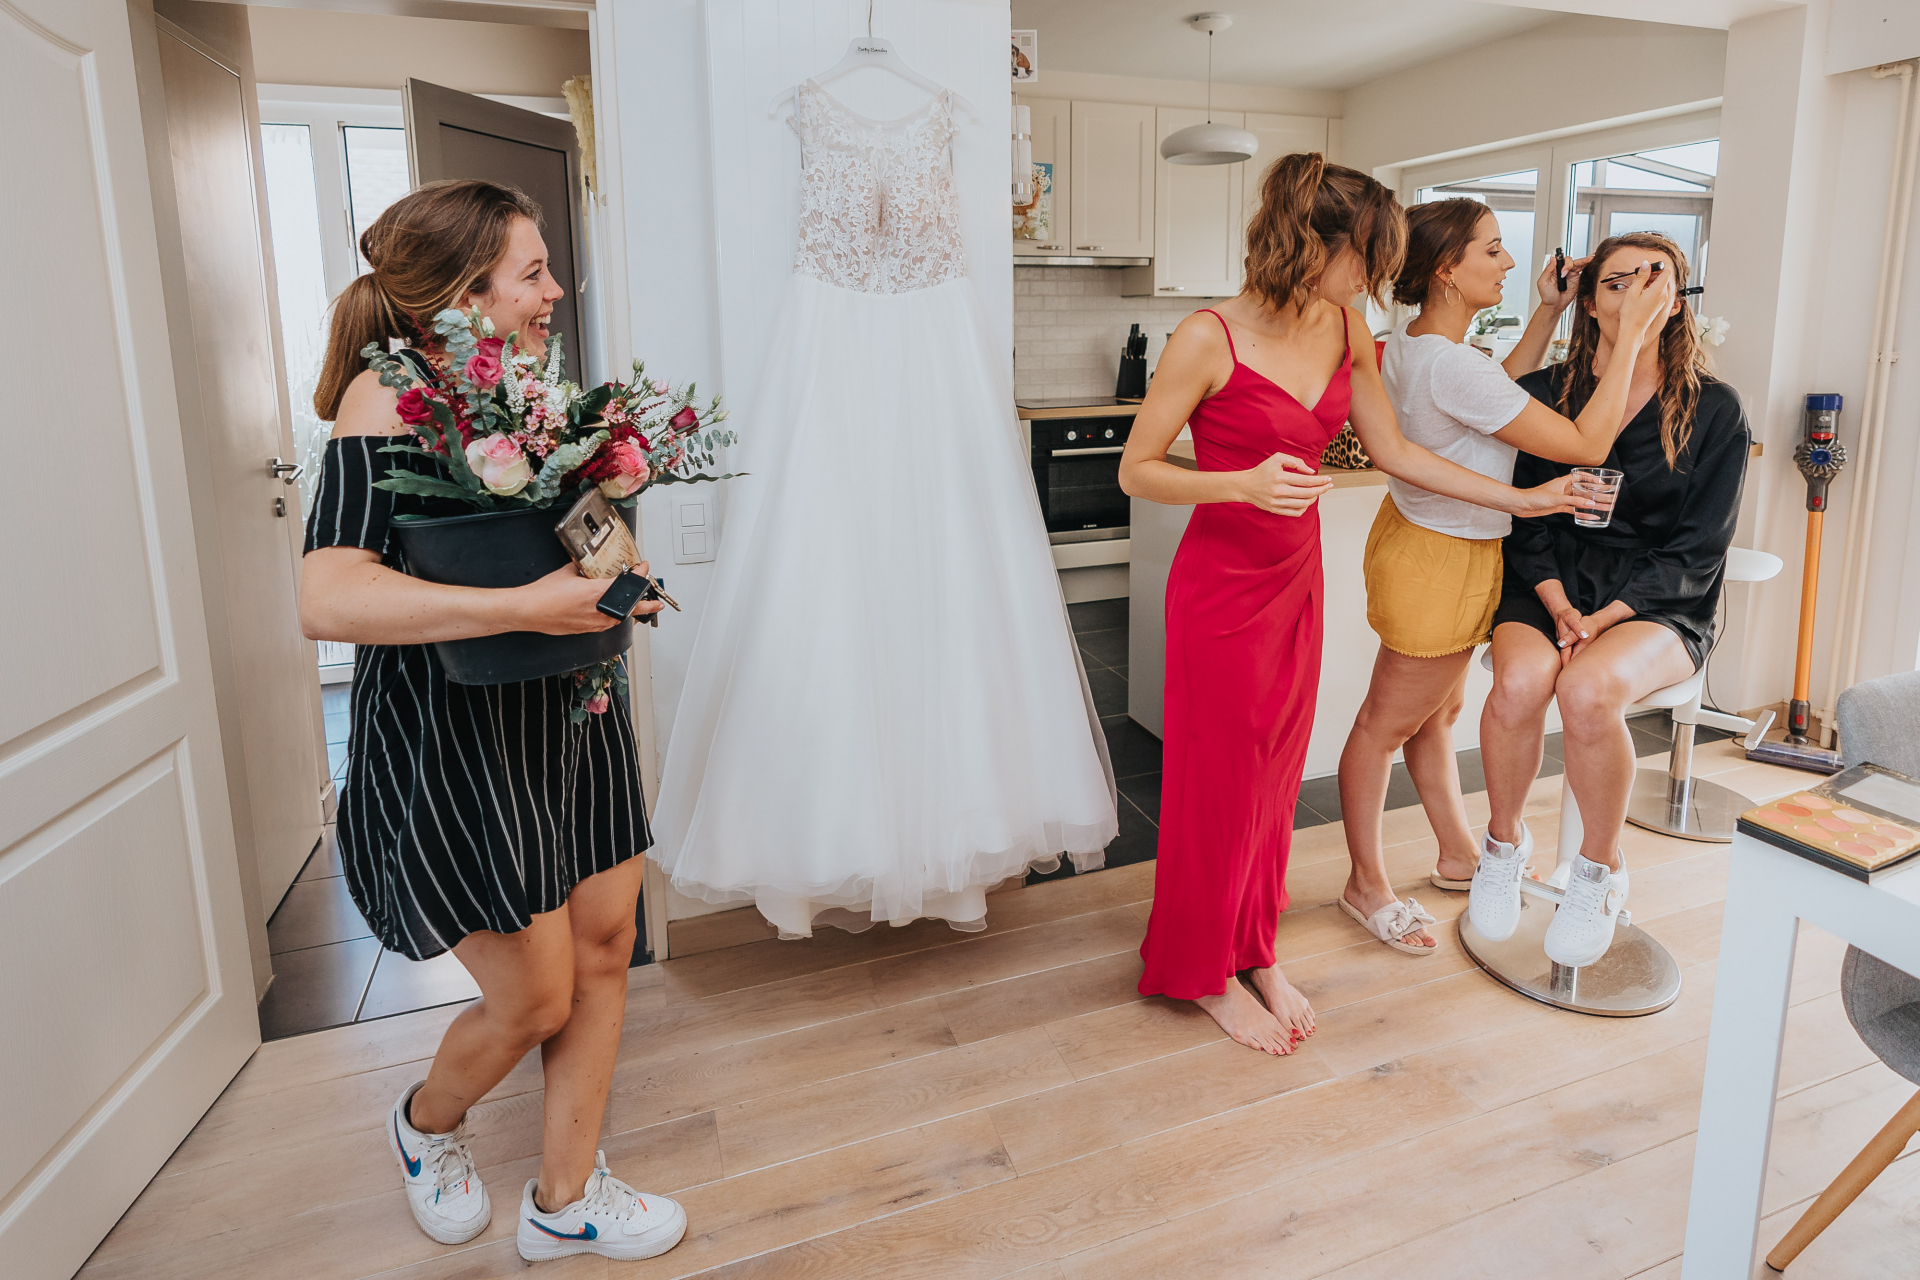 Brides Home - Belgium Covid Elopement Photos | Still and quiet in the house, while the bride is getting prepared